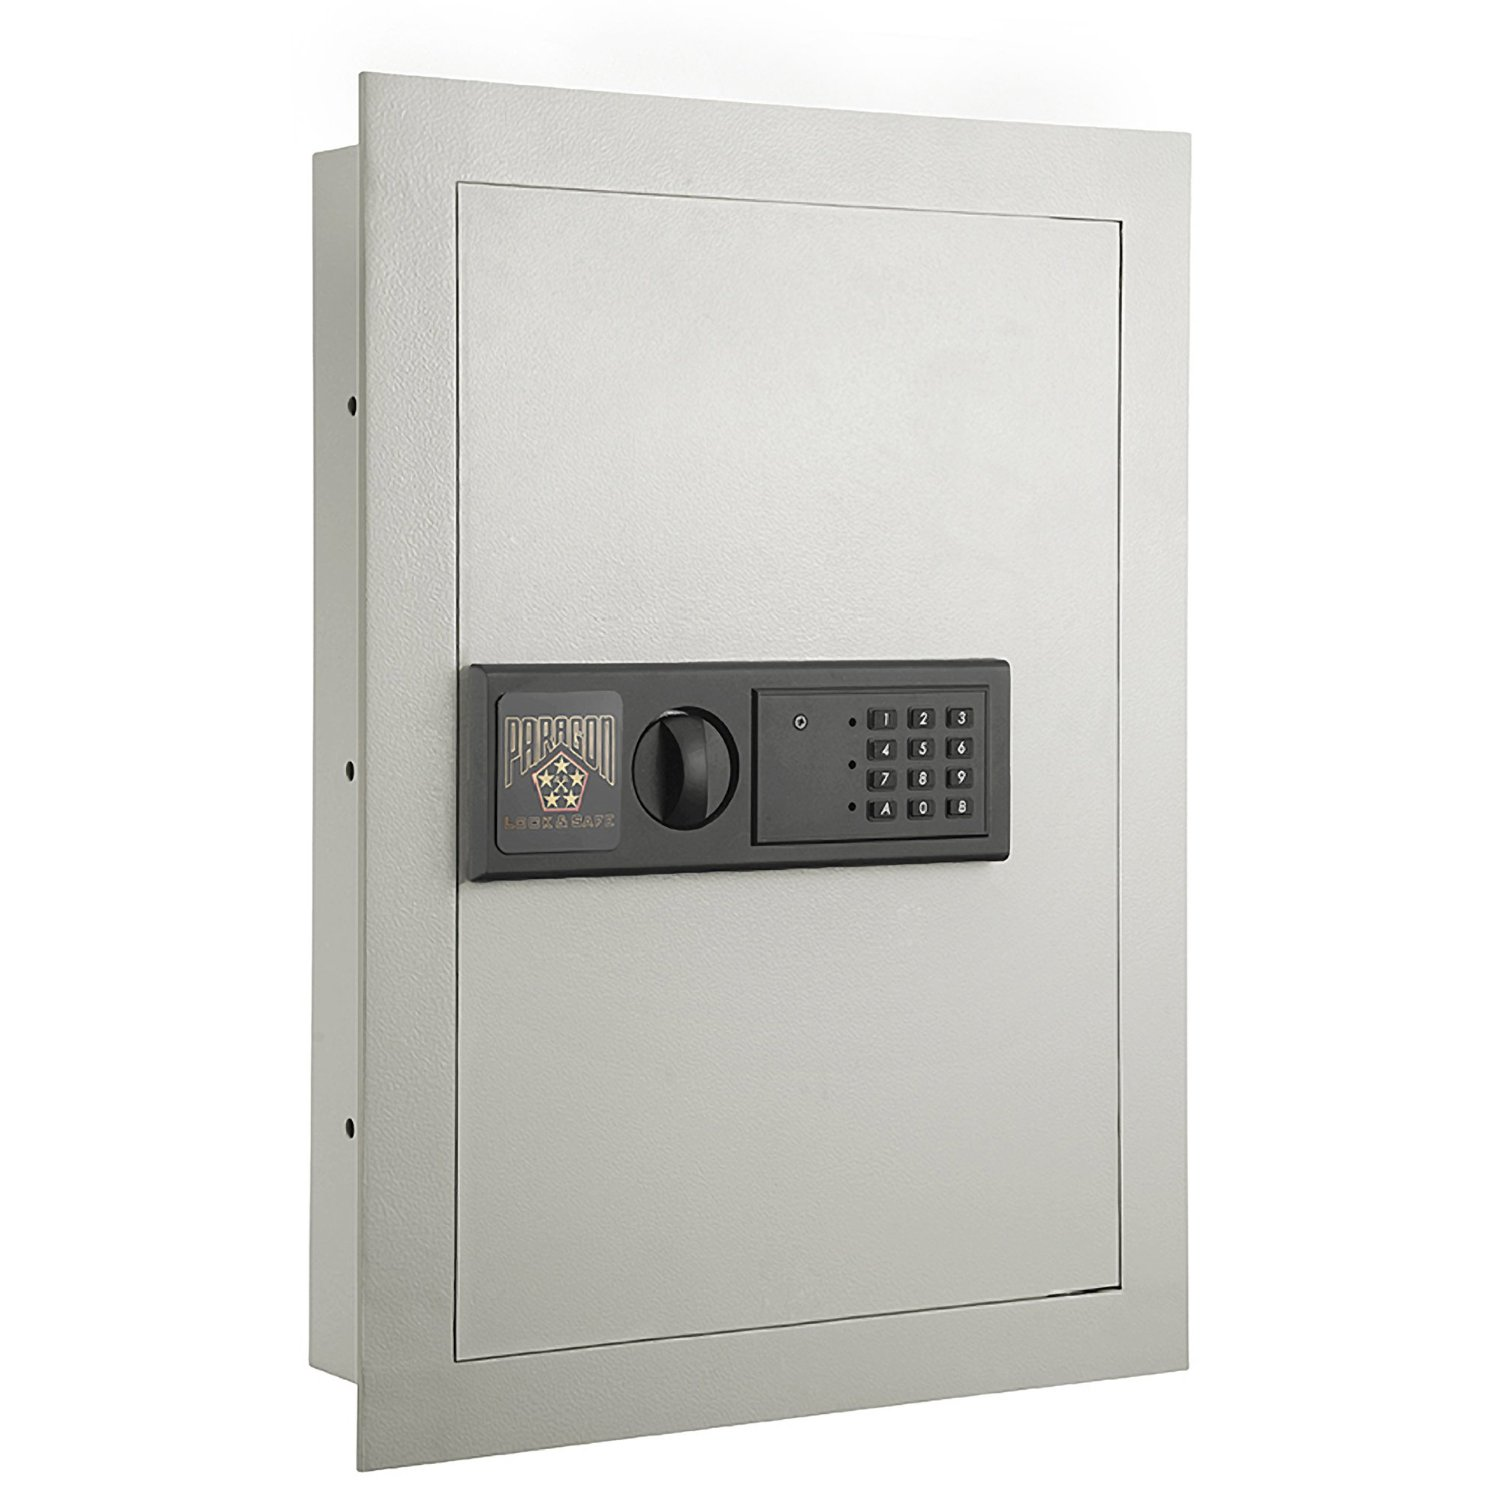 the Paragon 7750 Electronic Wall Lock Safe pictured here is another of the best wall safes for guns